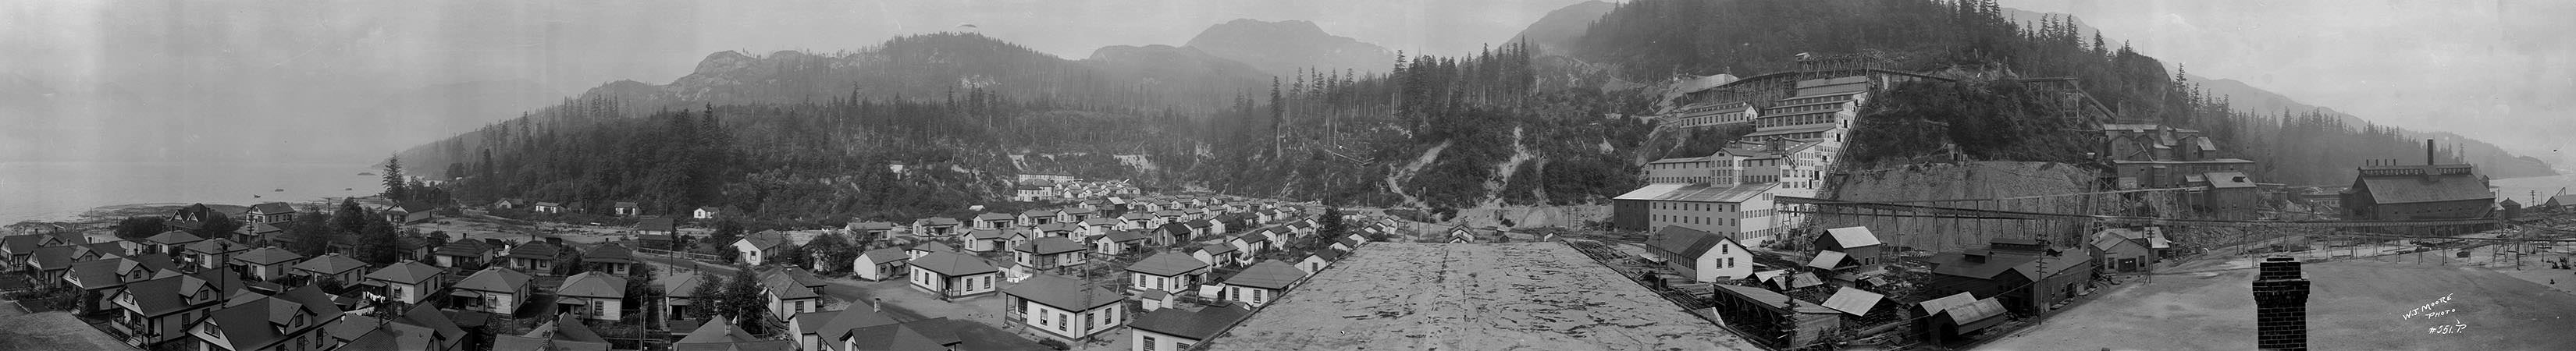 Britannia Mining and Smelting Co, town and waterfront, Britannia Beach 17 Aug. 1917 © W.J. Moore Photo Vancouver Archives PAN N34